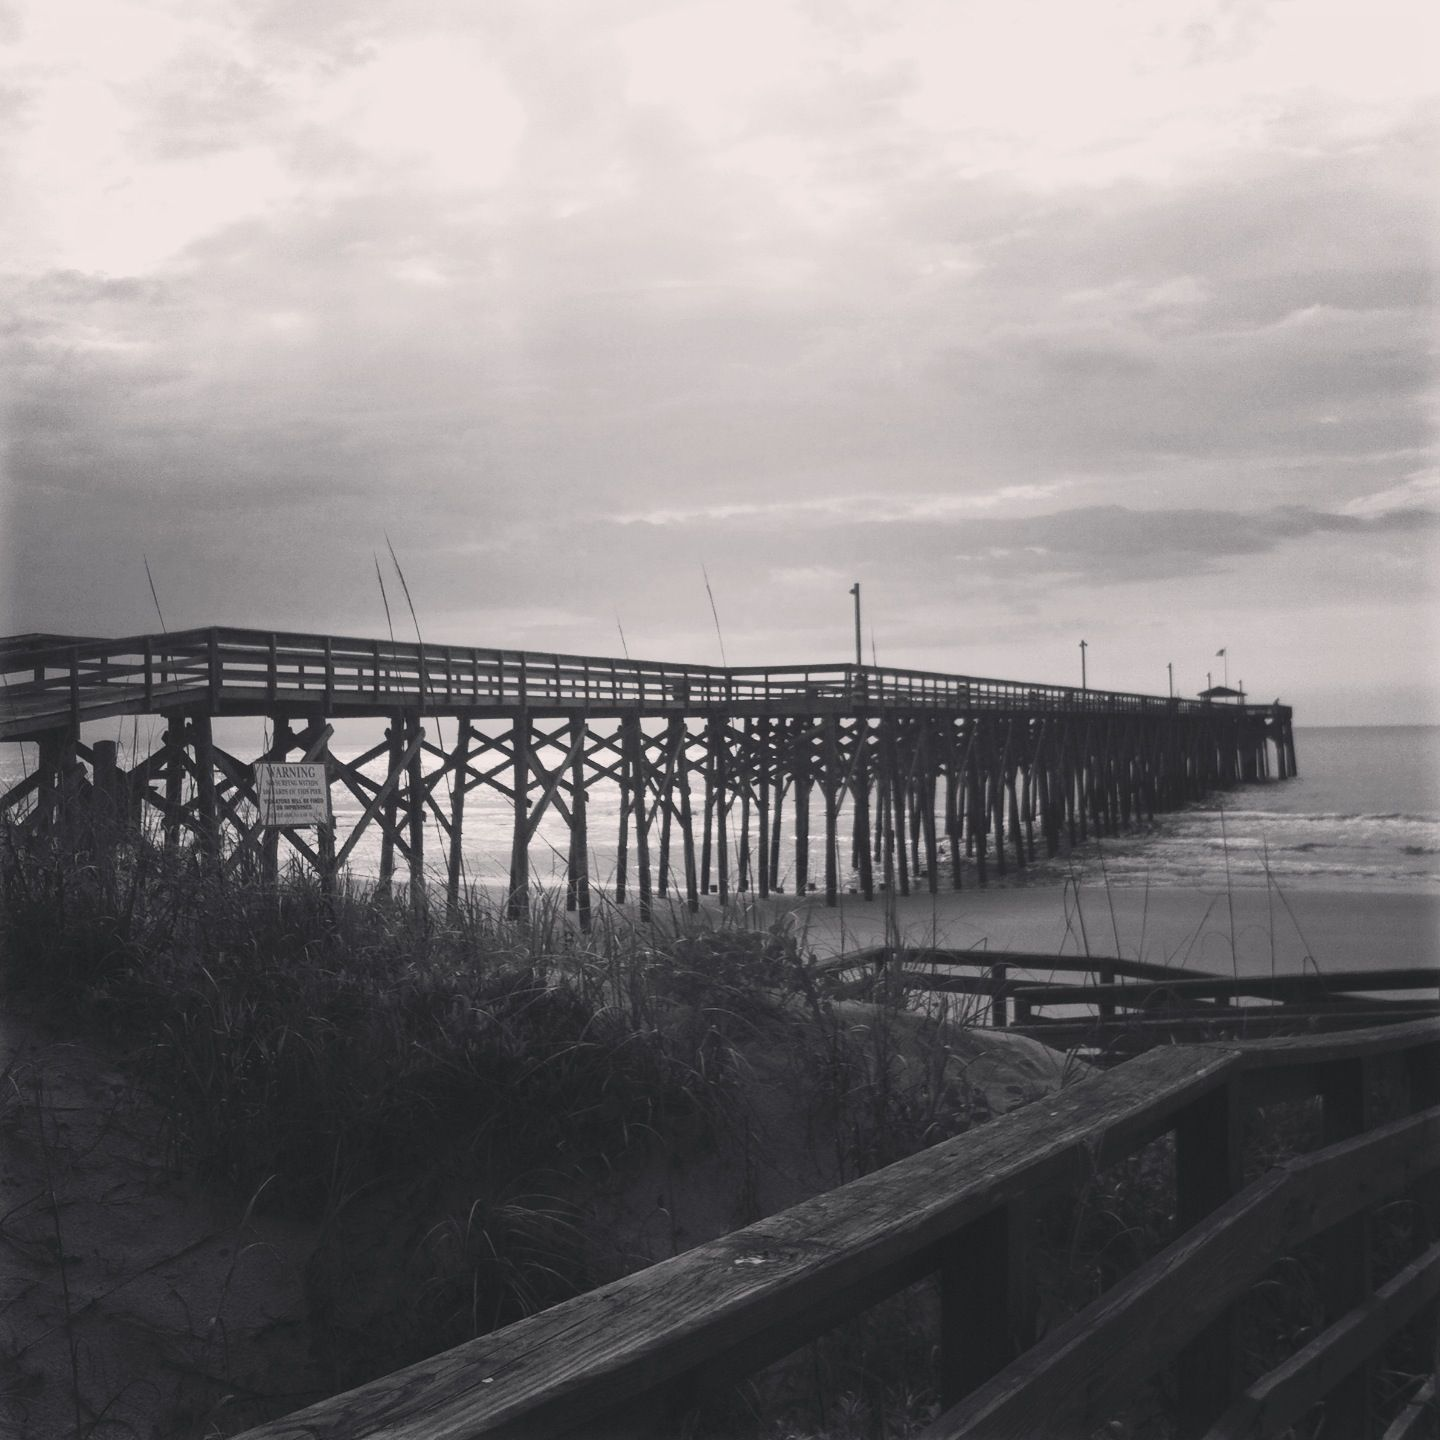 Pawleys Island Beach: Pawleys Island Pier, Pawleys Island, South Carolina